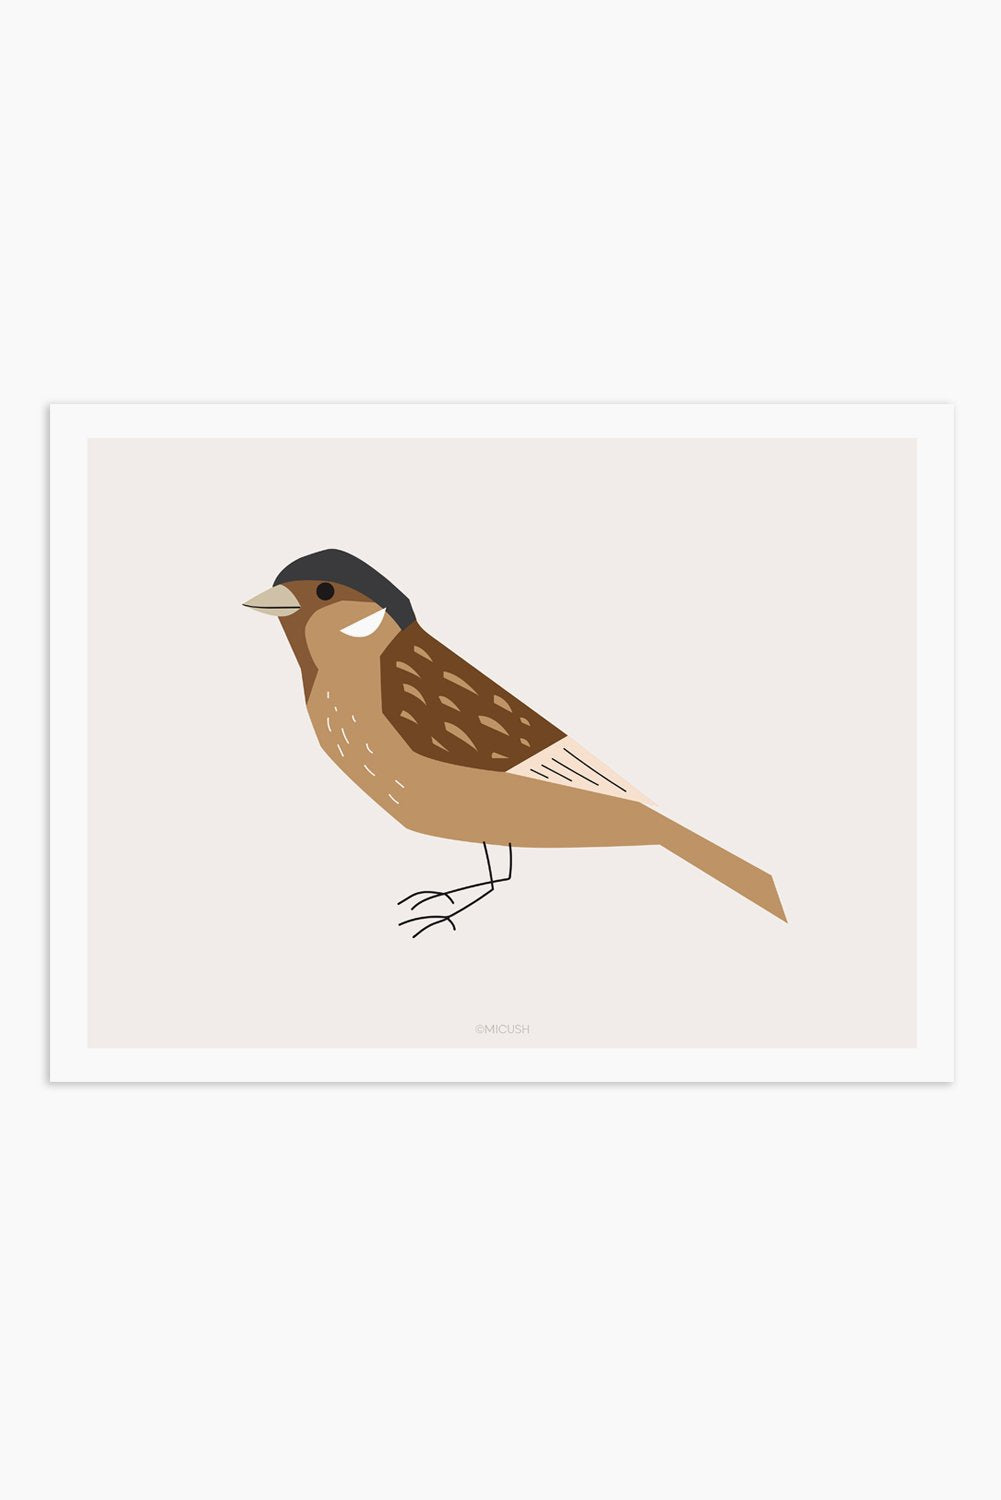 Art Print - Bird - Sparrow